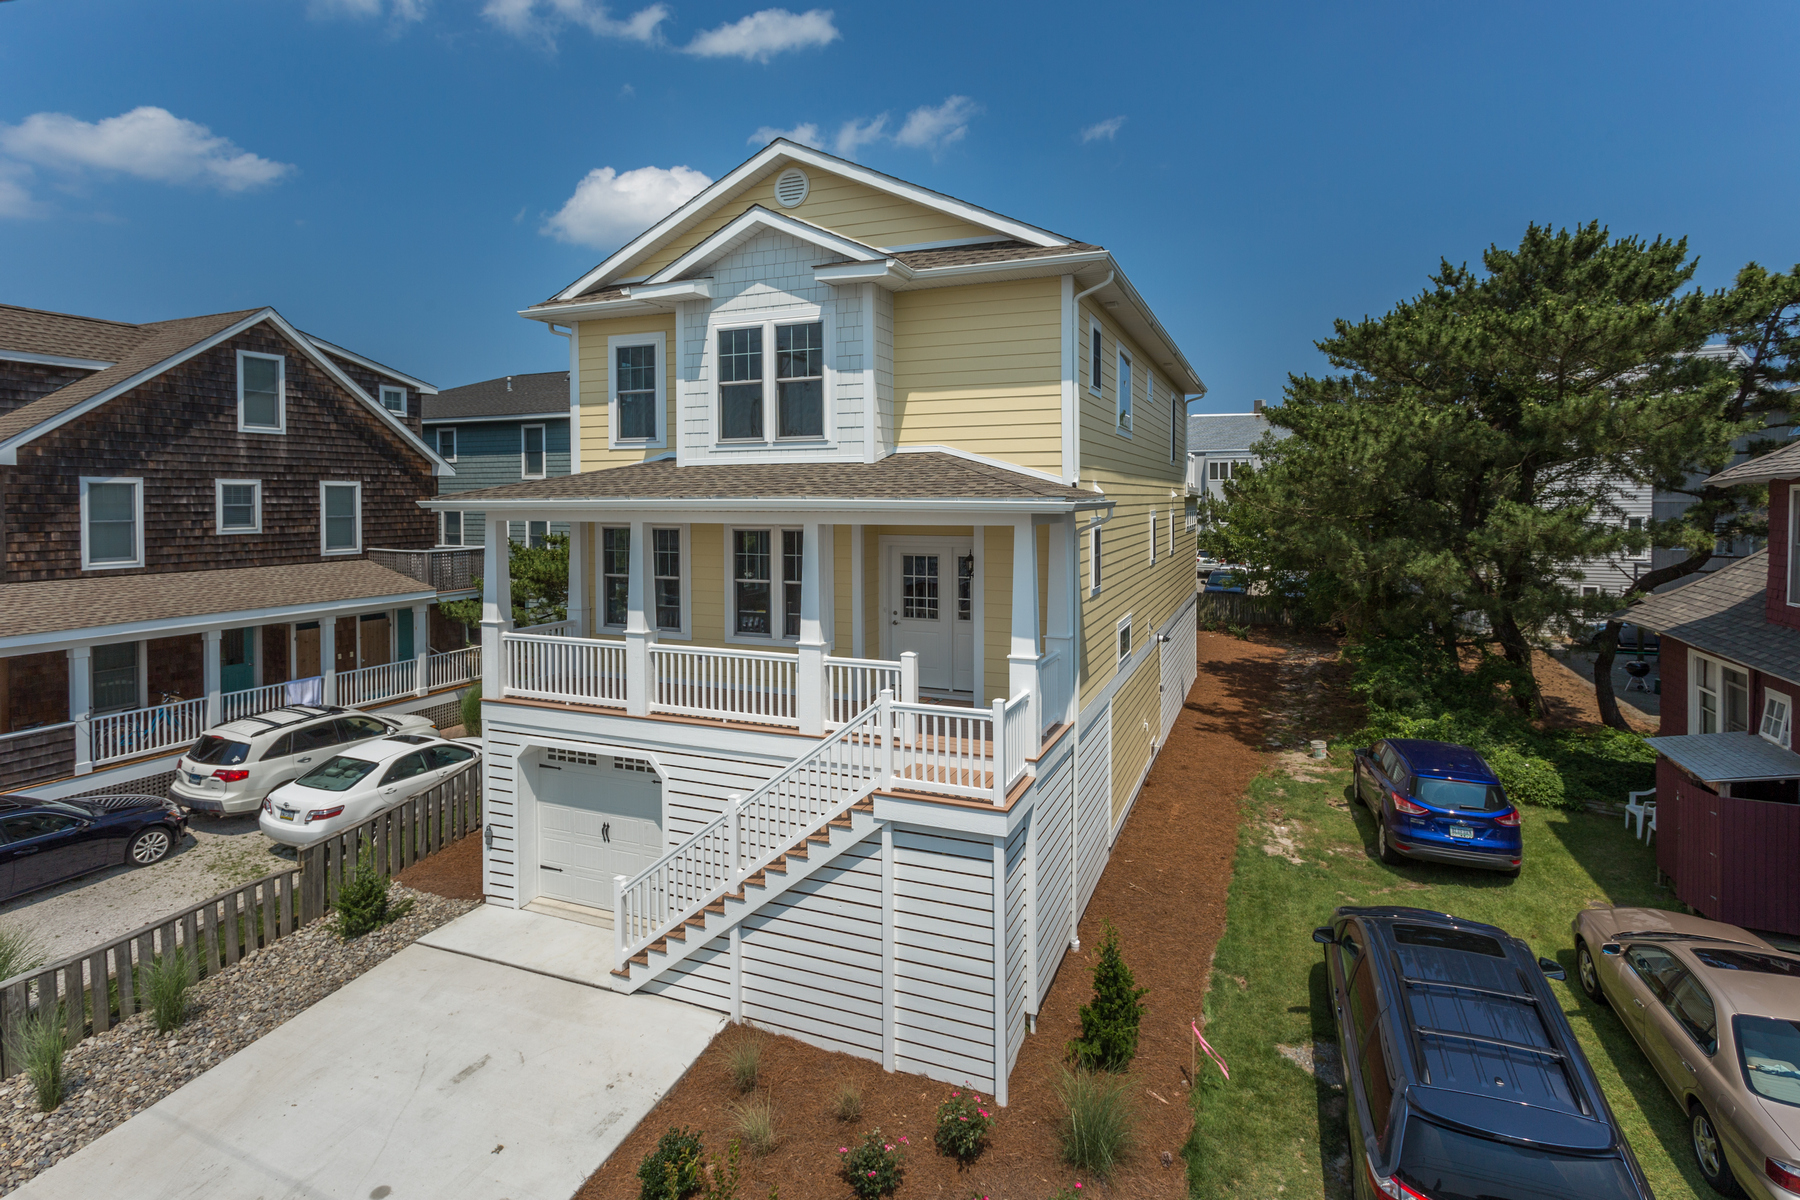 Single Family Home for Sale at 26 Atlantic Avenue, Bethany Beach, DE 19930 26 Atlantic Avenue Bethany Beach, Delaware, 19930 United States